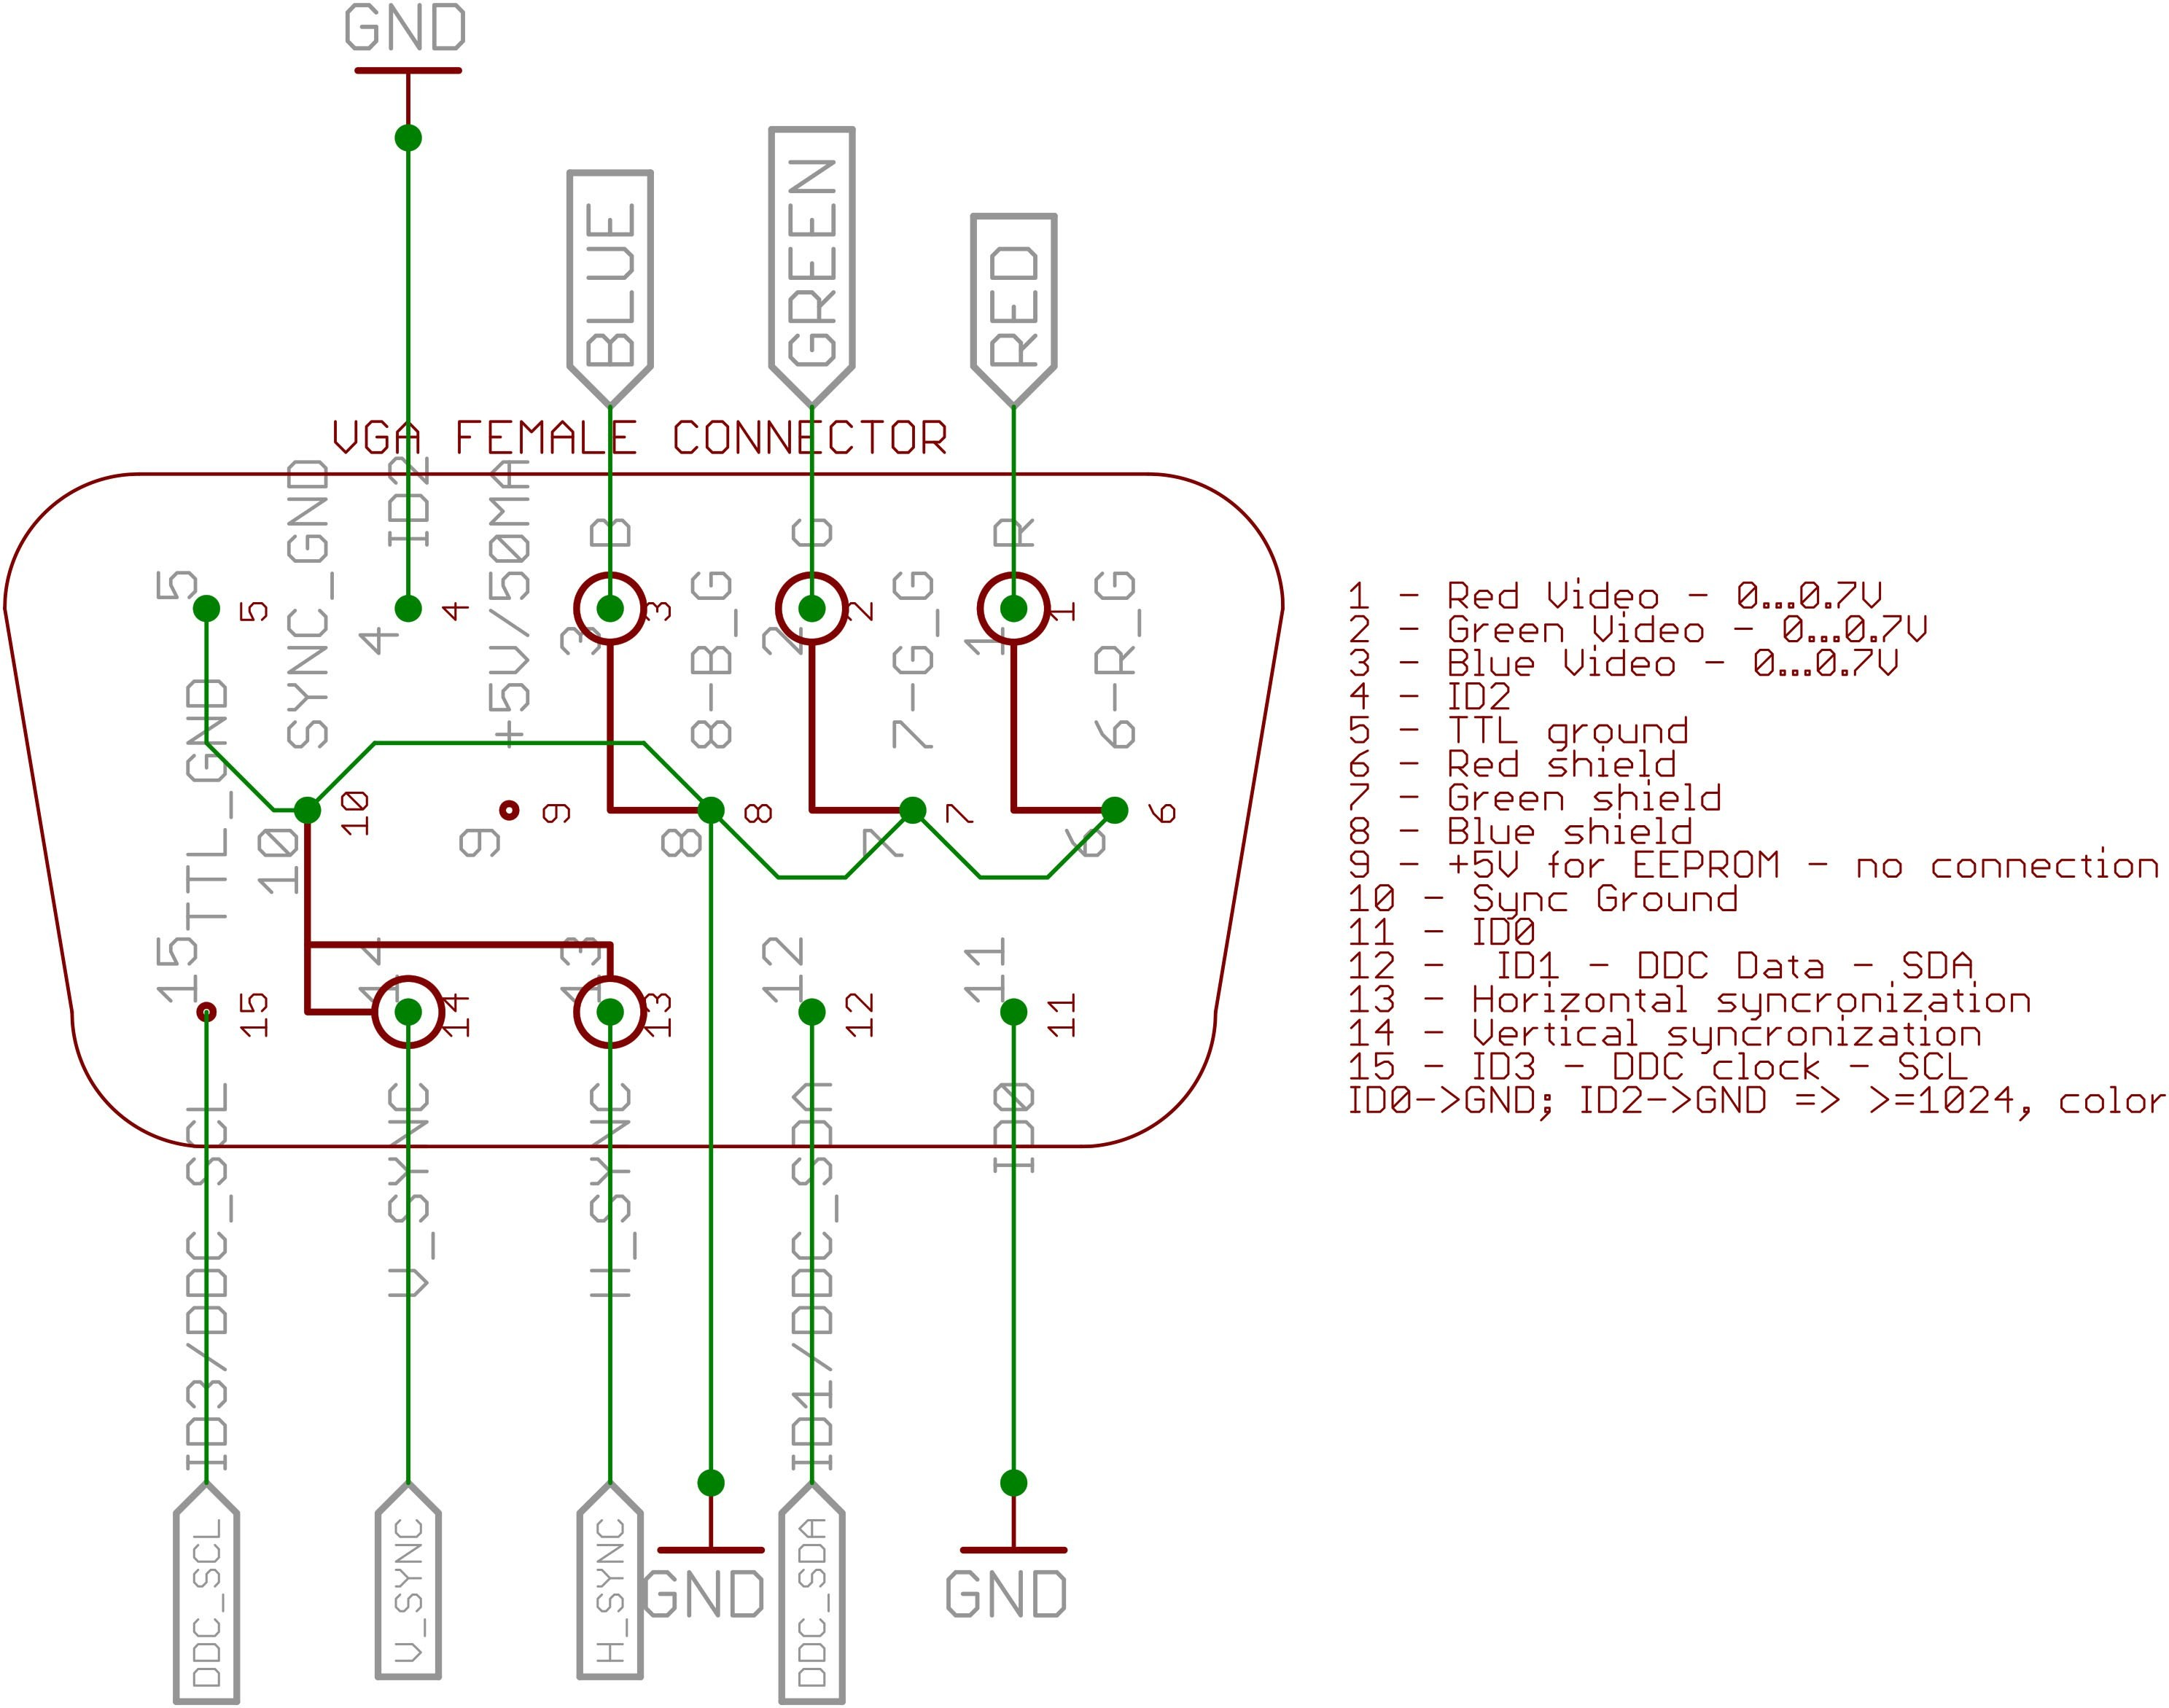 vga connector wiring circuit connection diagram u2022 rh wiringdiagraminc today In Out RCA to VGA Diagram VGA to Av Diagram